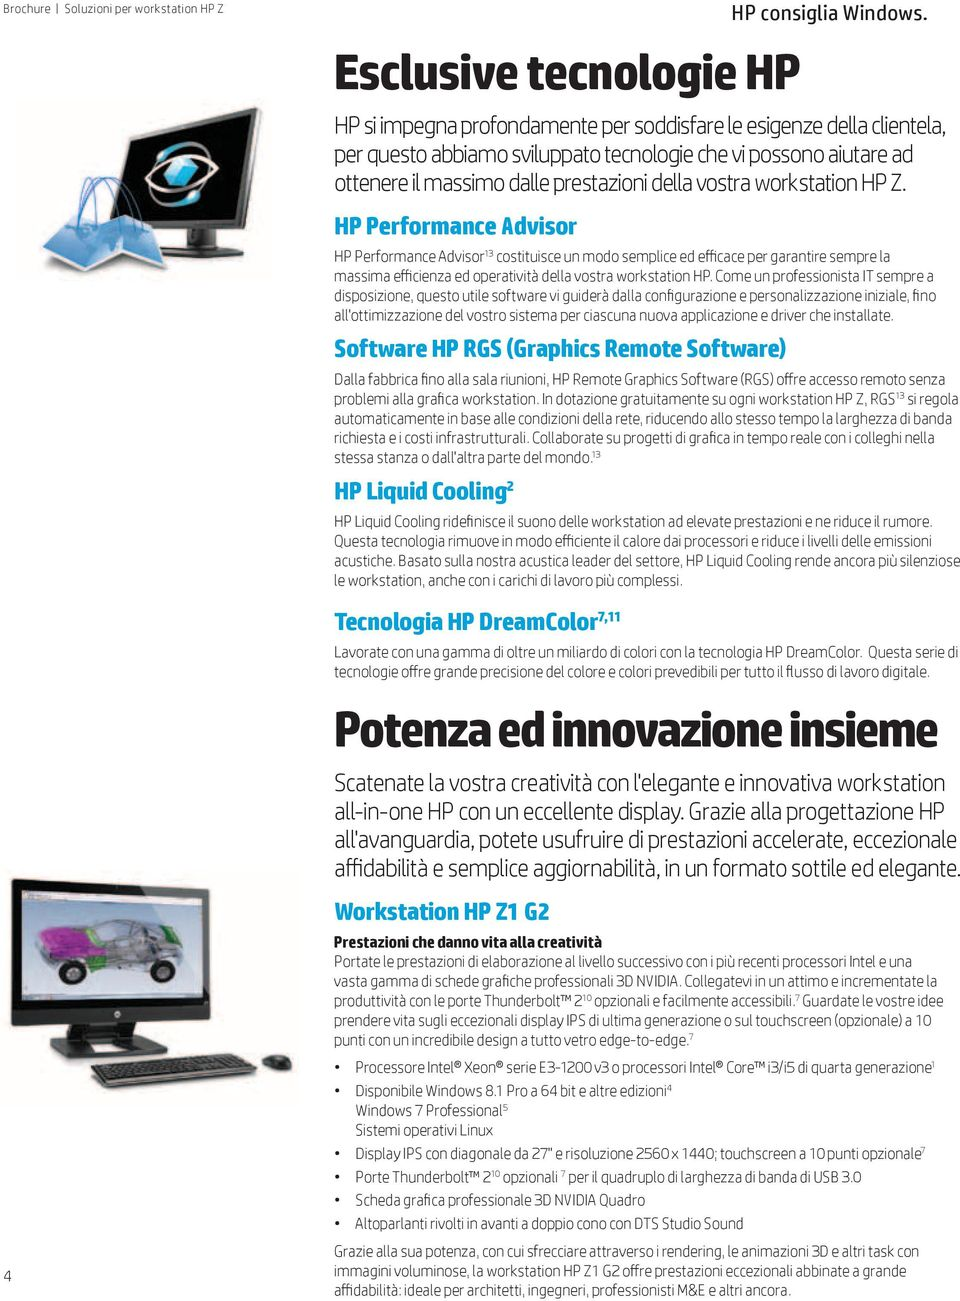 HP Performance Advisor HP Performance Advisor 13 costituisce un modo semplice ed efficace per garantire sempre la massima efficienza ed operatività della vostra workstation HP.